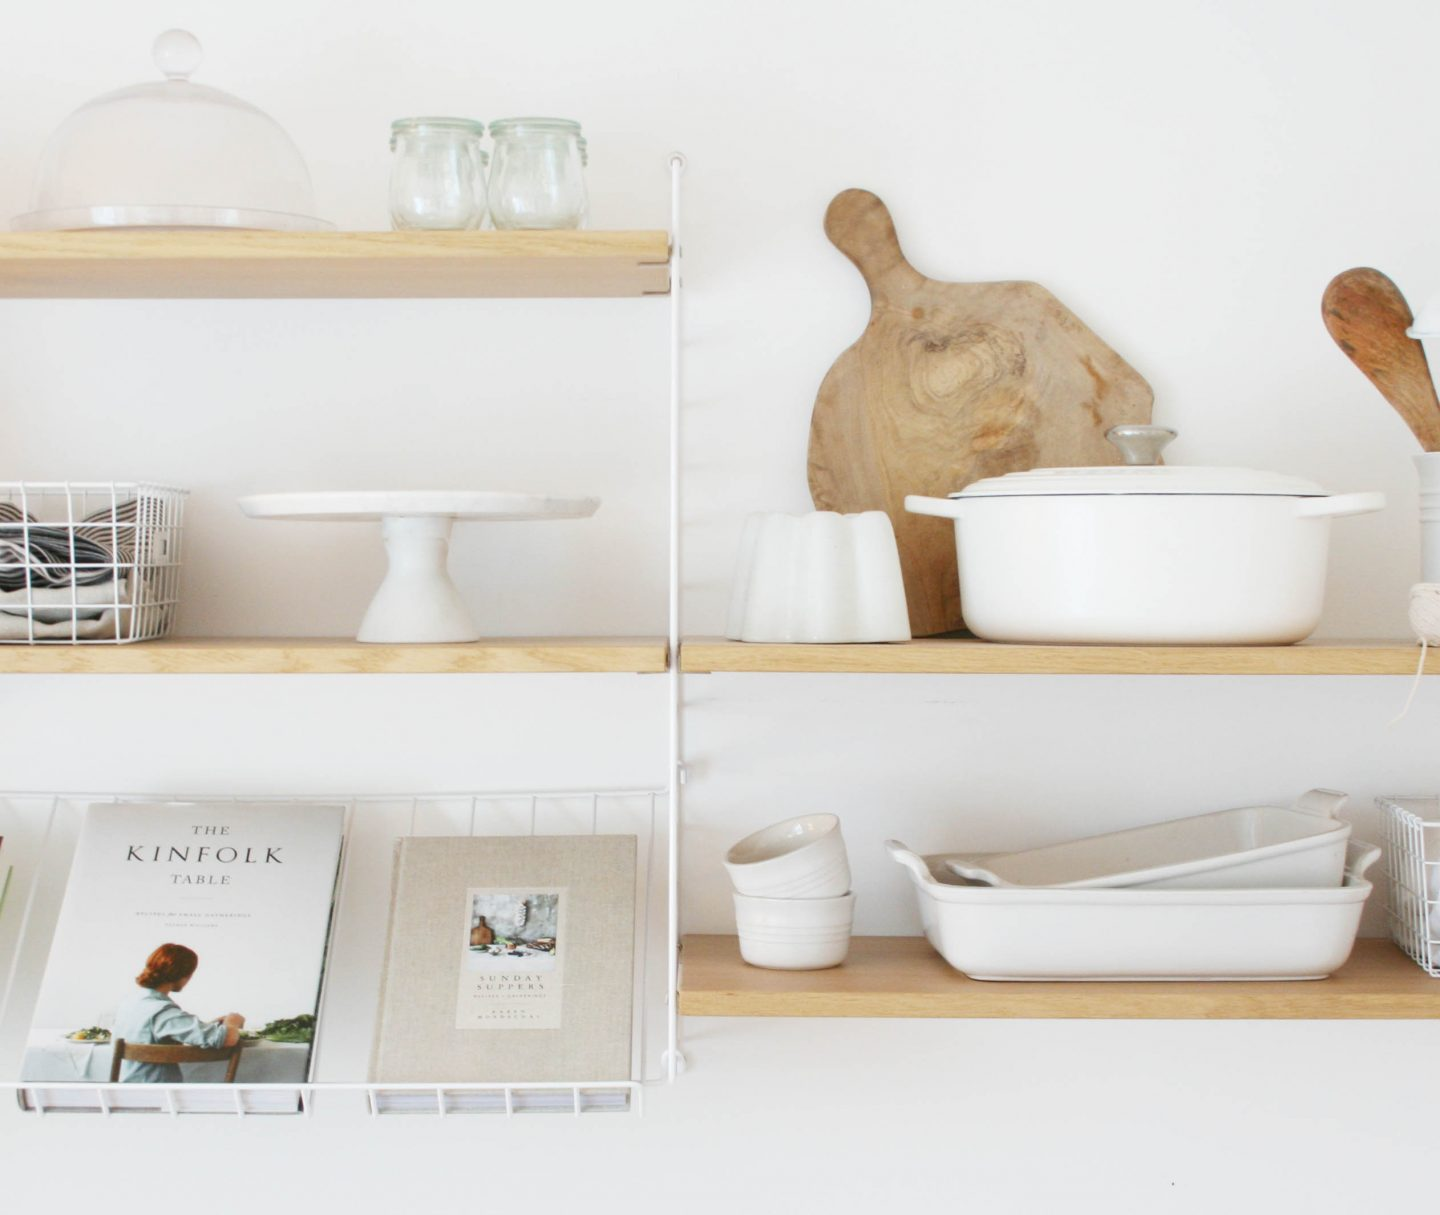 Cotton white Le Creuset | Styling neutrals in your home | Styling String Shelving | Apartment Apothecary